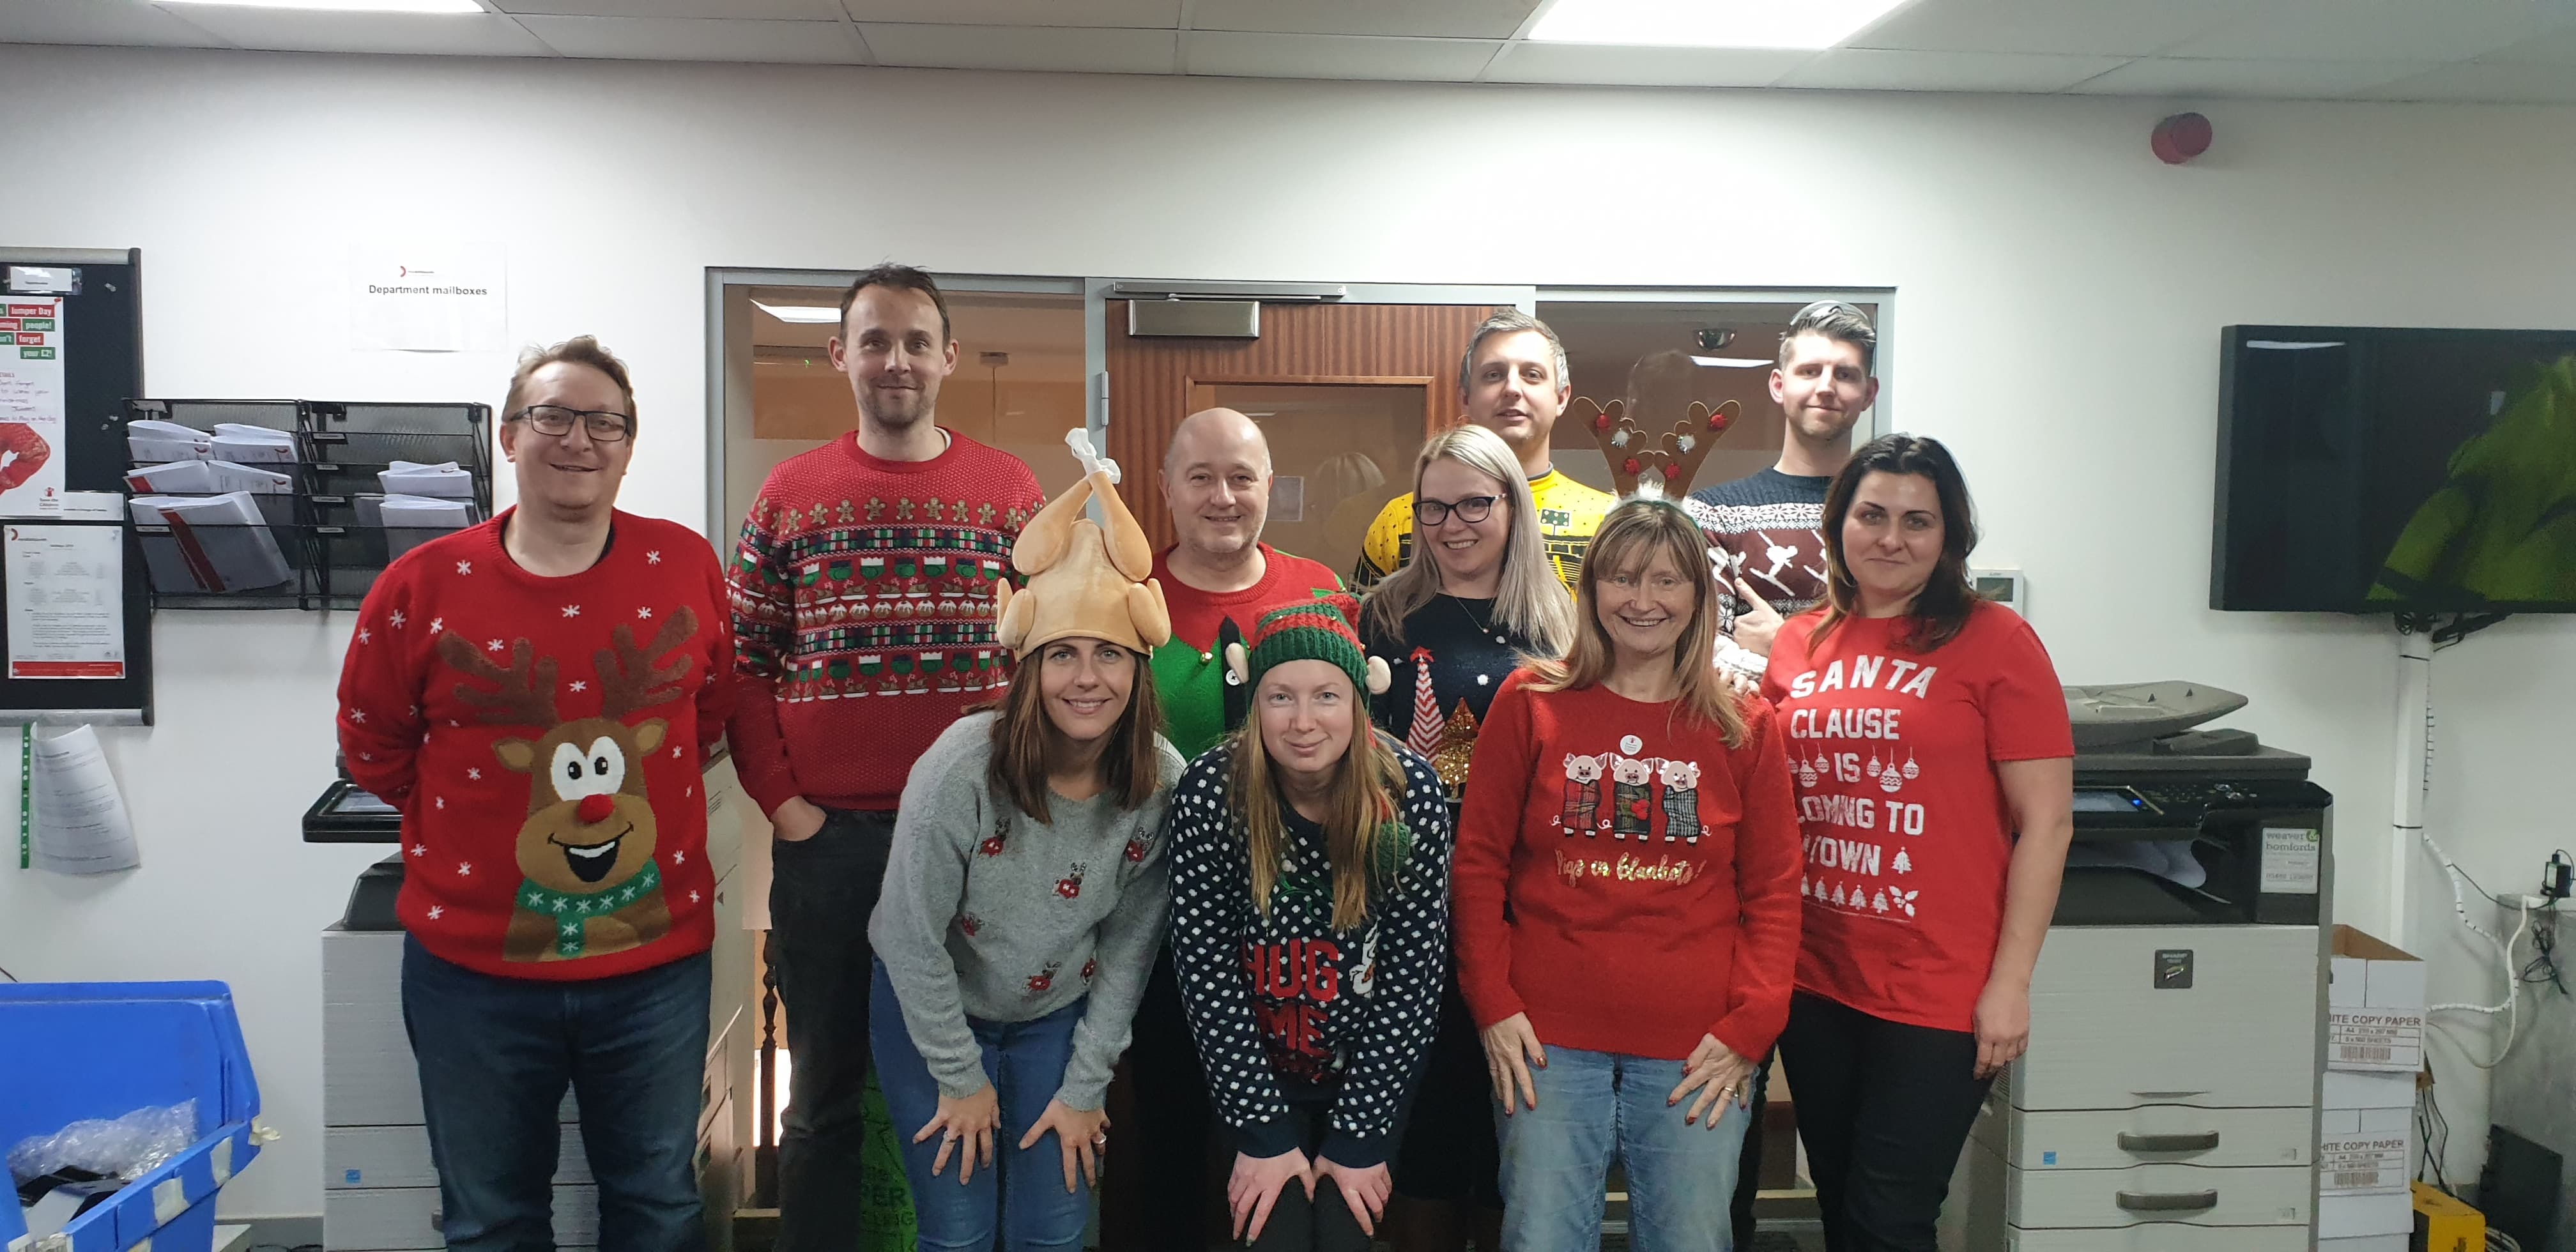 pym and wildsmith christmas jumper day